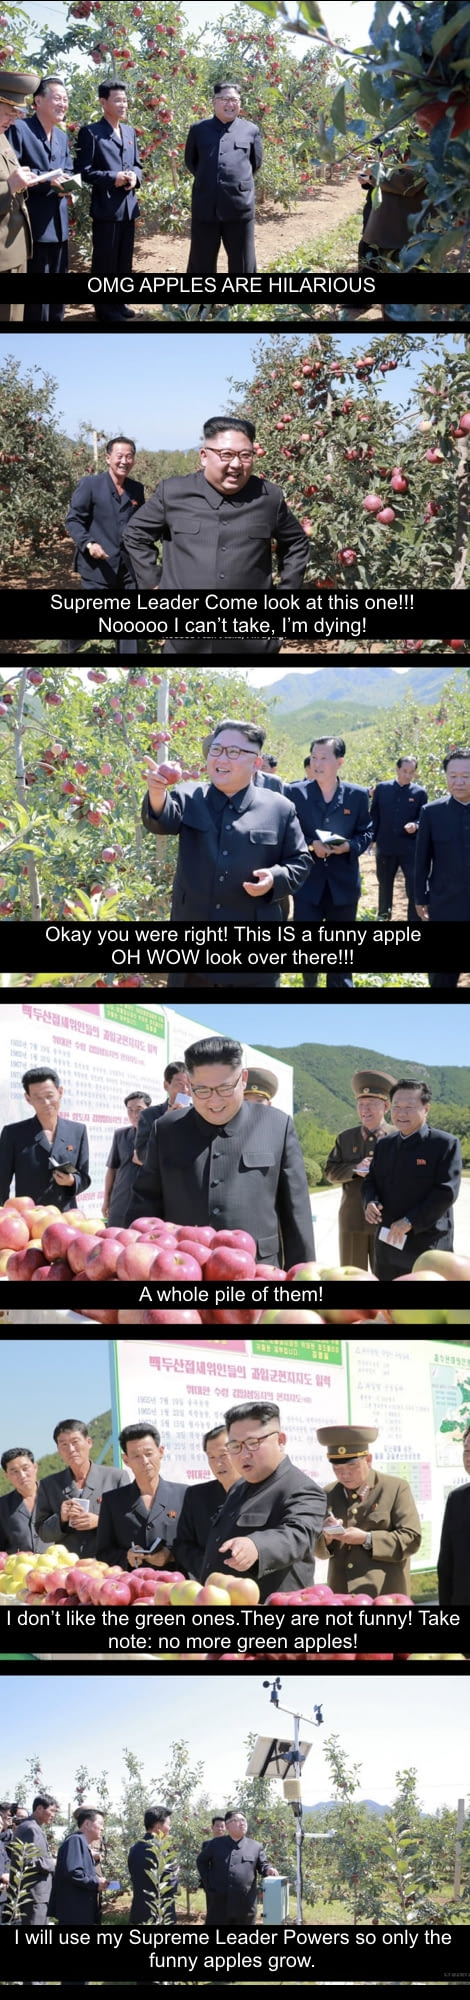 Red apples are hilarious